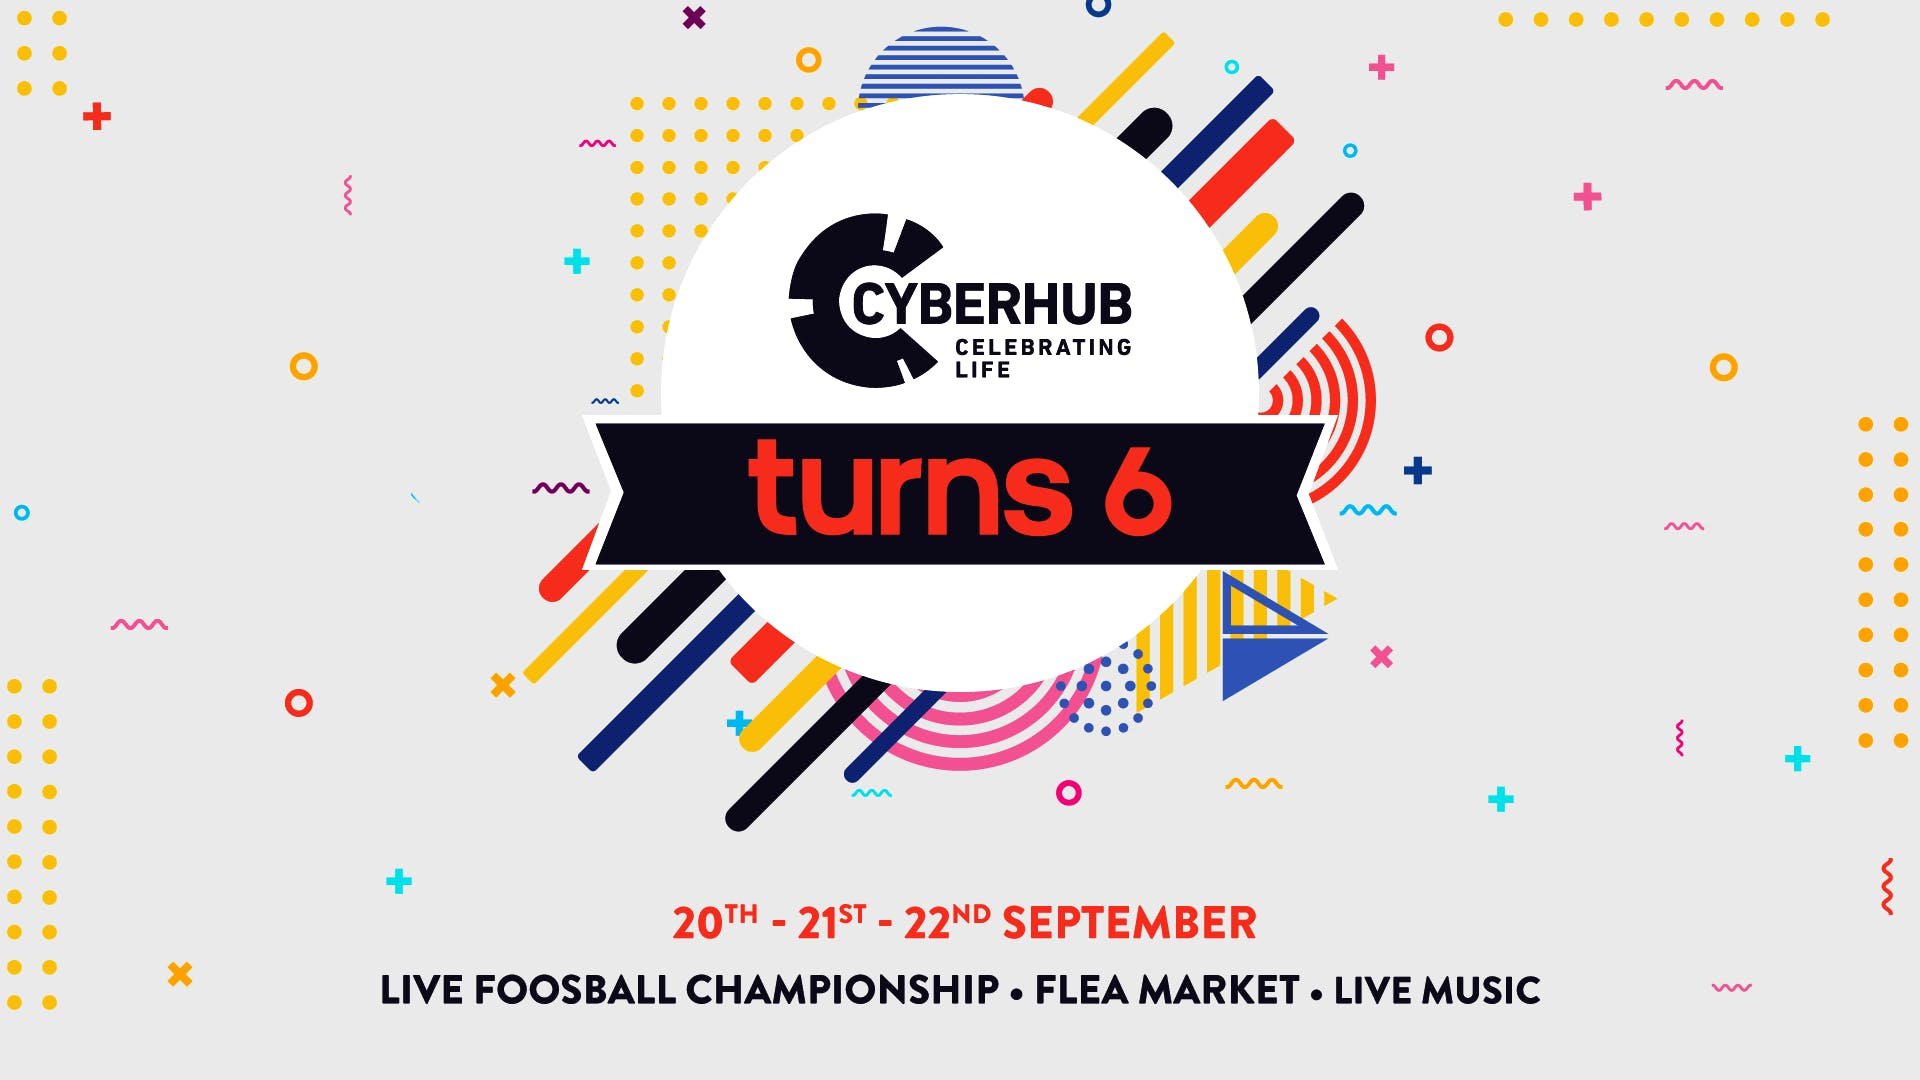 image - DLF Cyberhub Has Just Turned 6 Years And They Are Organising A Fest To Celebrate This!